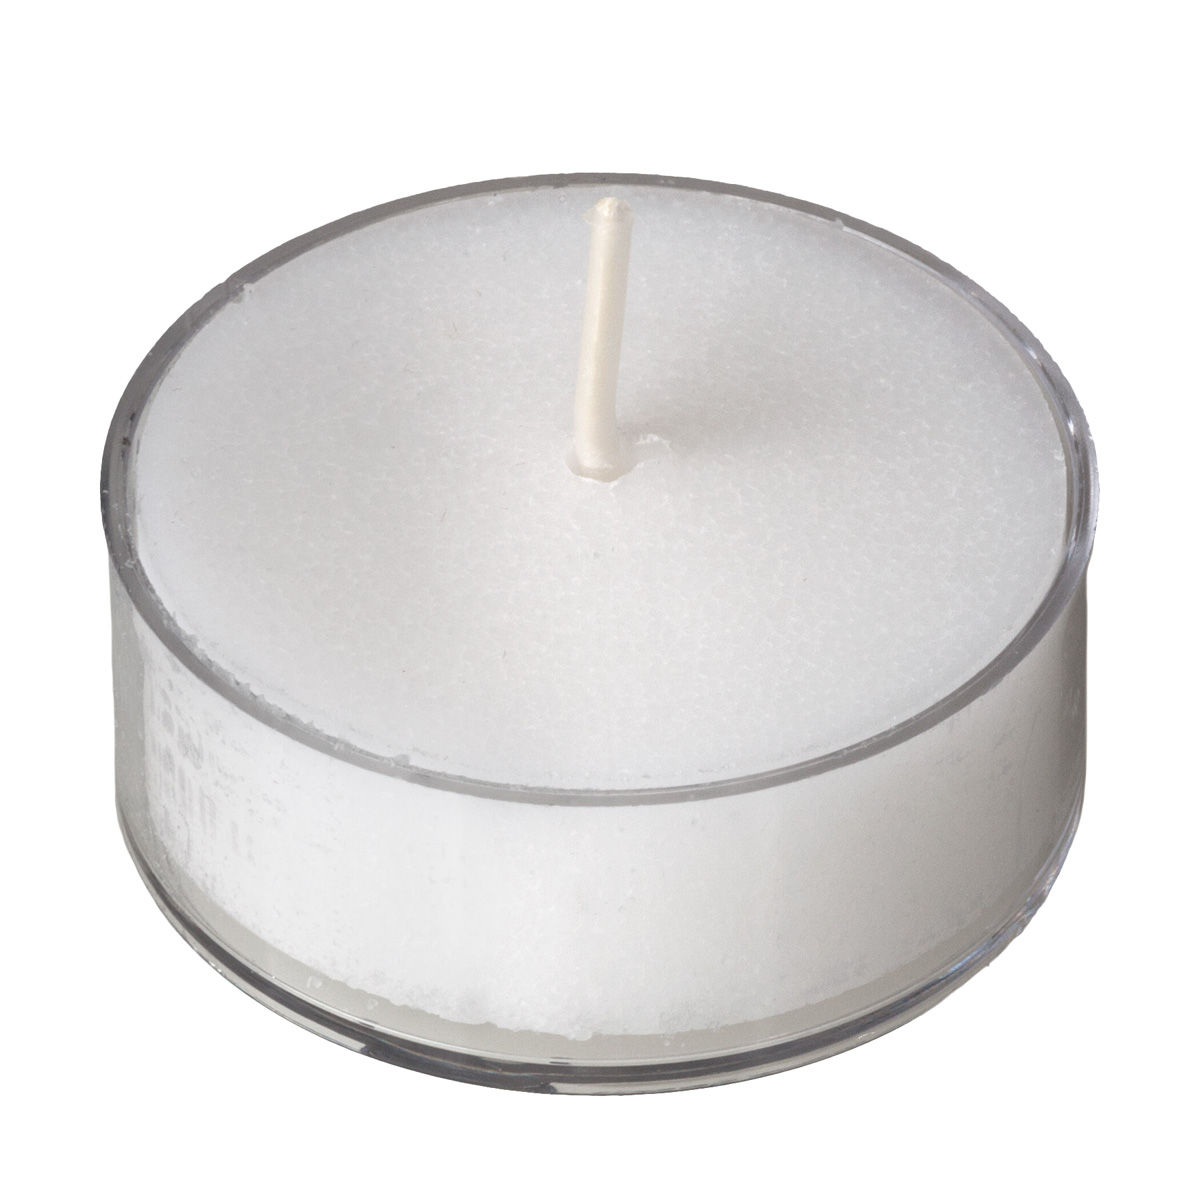 White Tealight Candles In A Clear Cup